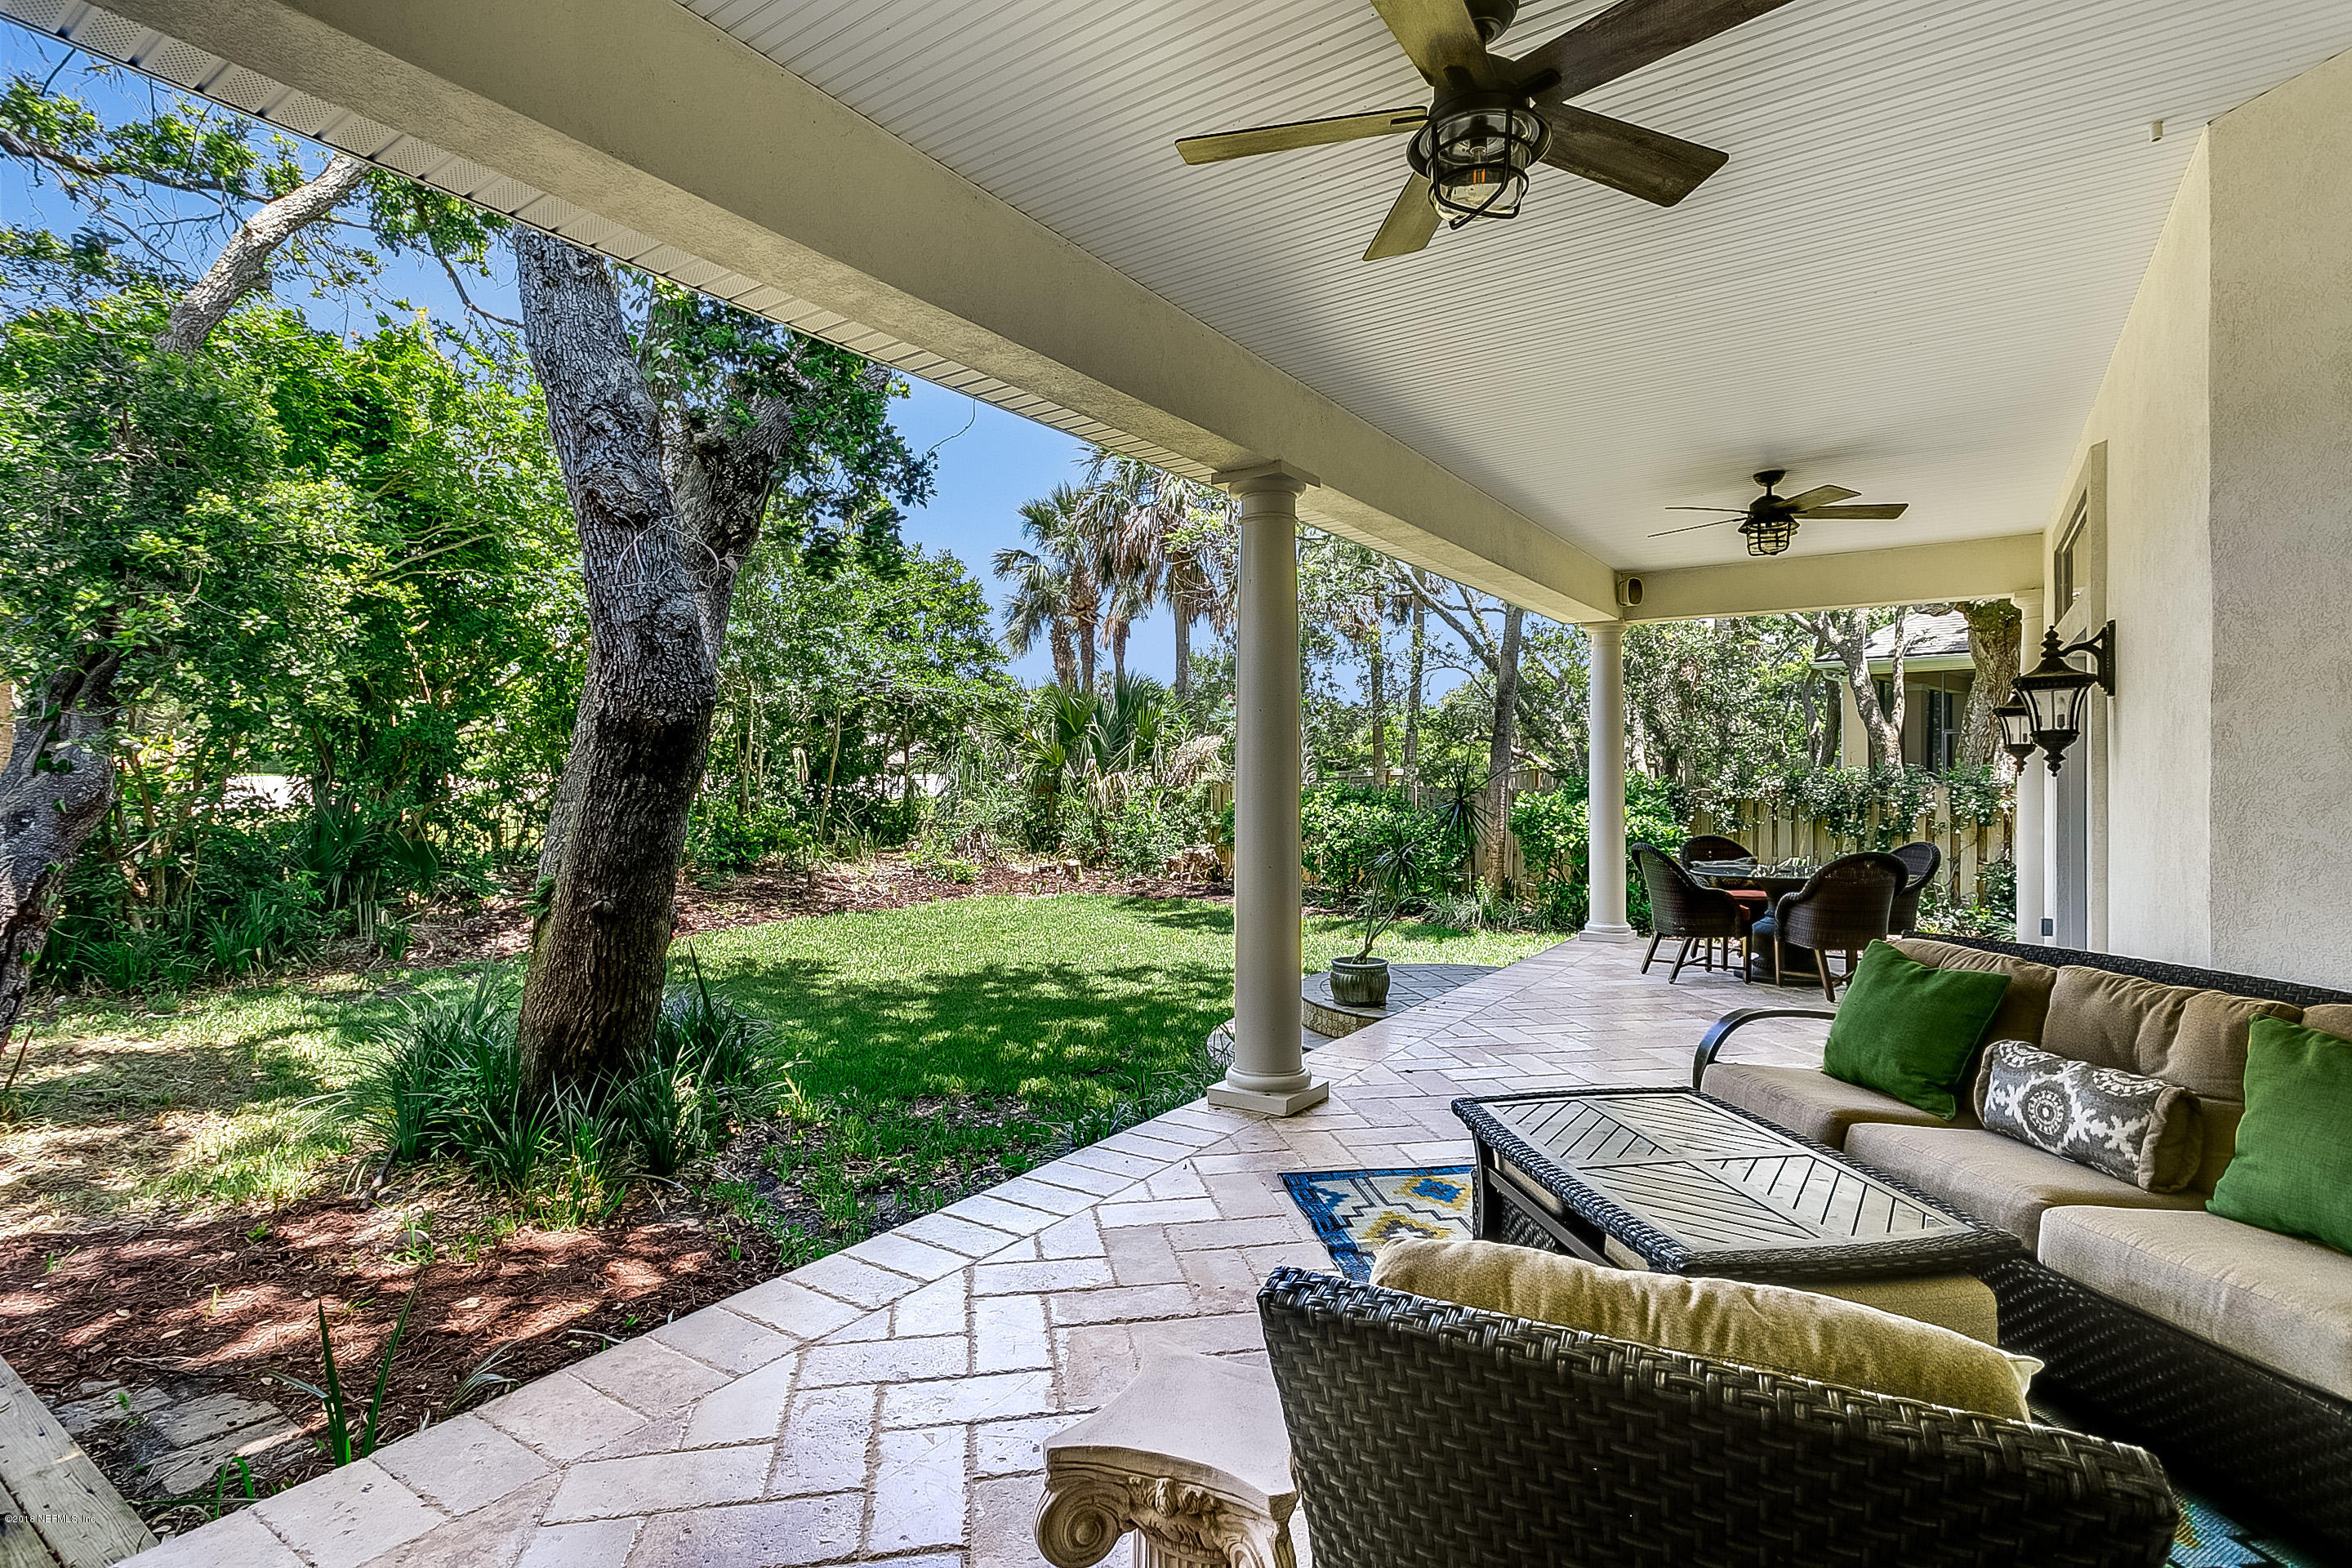 208 GNARLED OAKS, PONTE VEDRA BEACH, FLORIDA 32082, 4 Bedrooms Bedrooms, ,3 BathroomsBathrooms,Residential - single family,For sale,GNARLED OAKS,938555